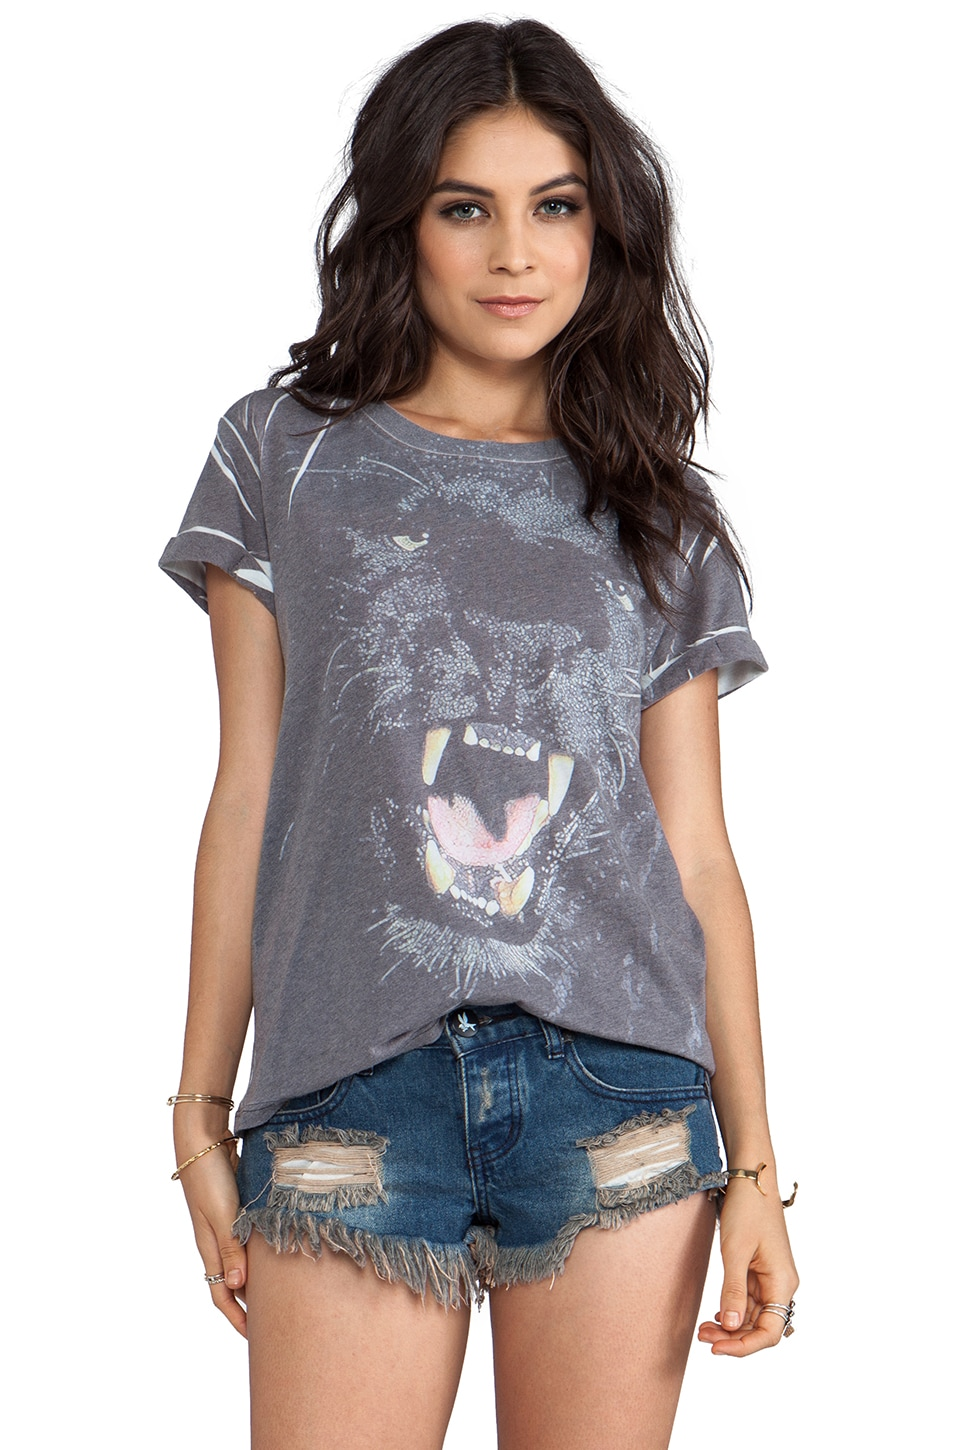 Local Celebrity Schiffer Tee in Panther